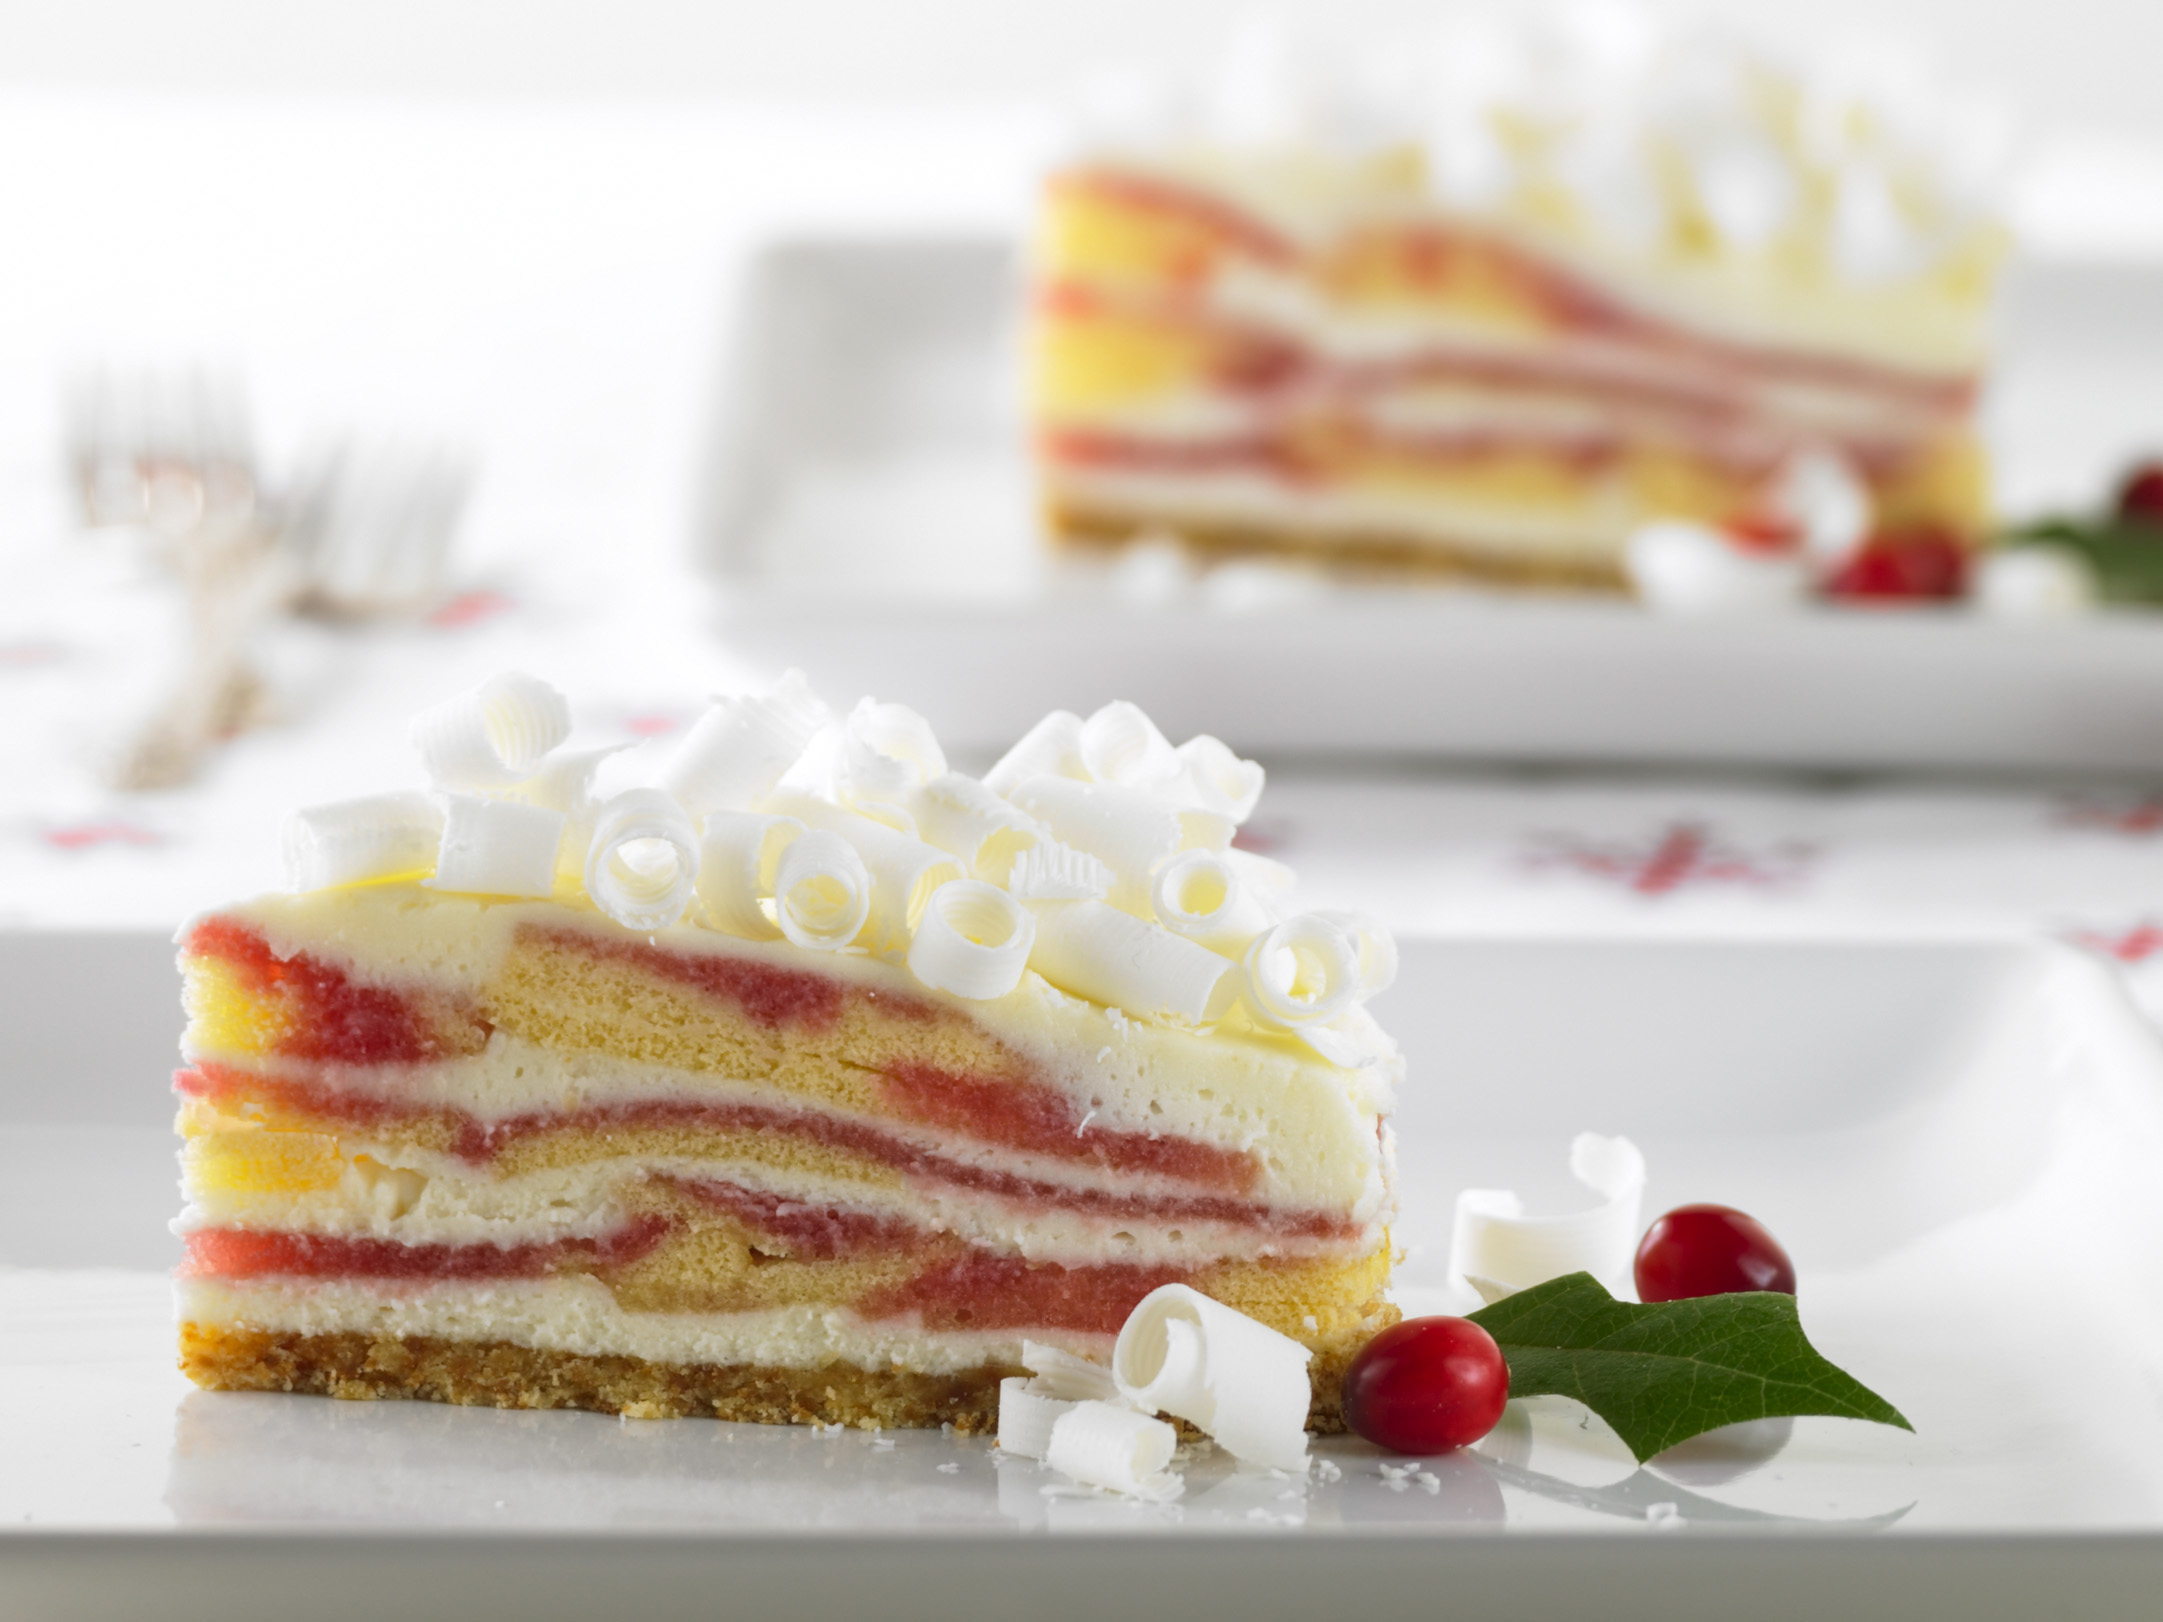 White Chocolate Cranberry Mousse Cake V2.jpg